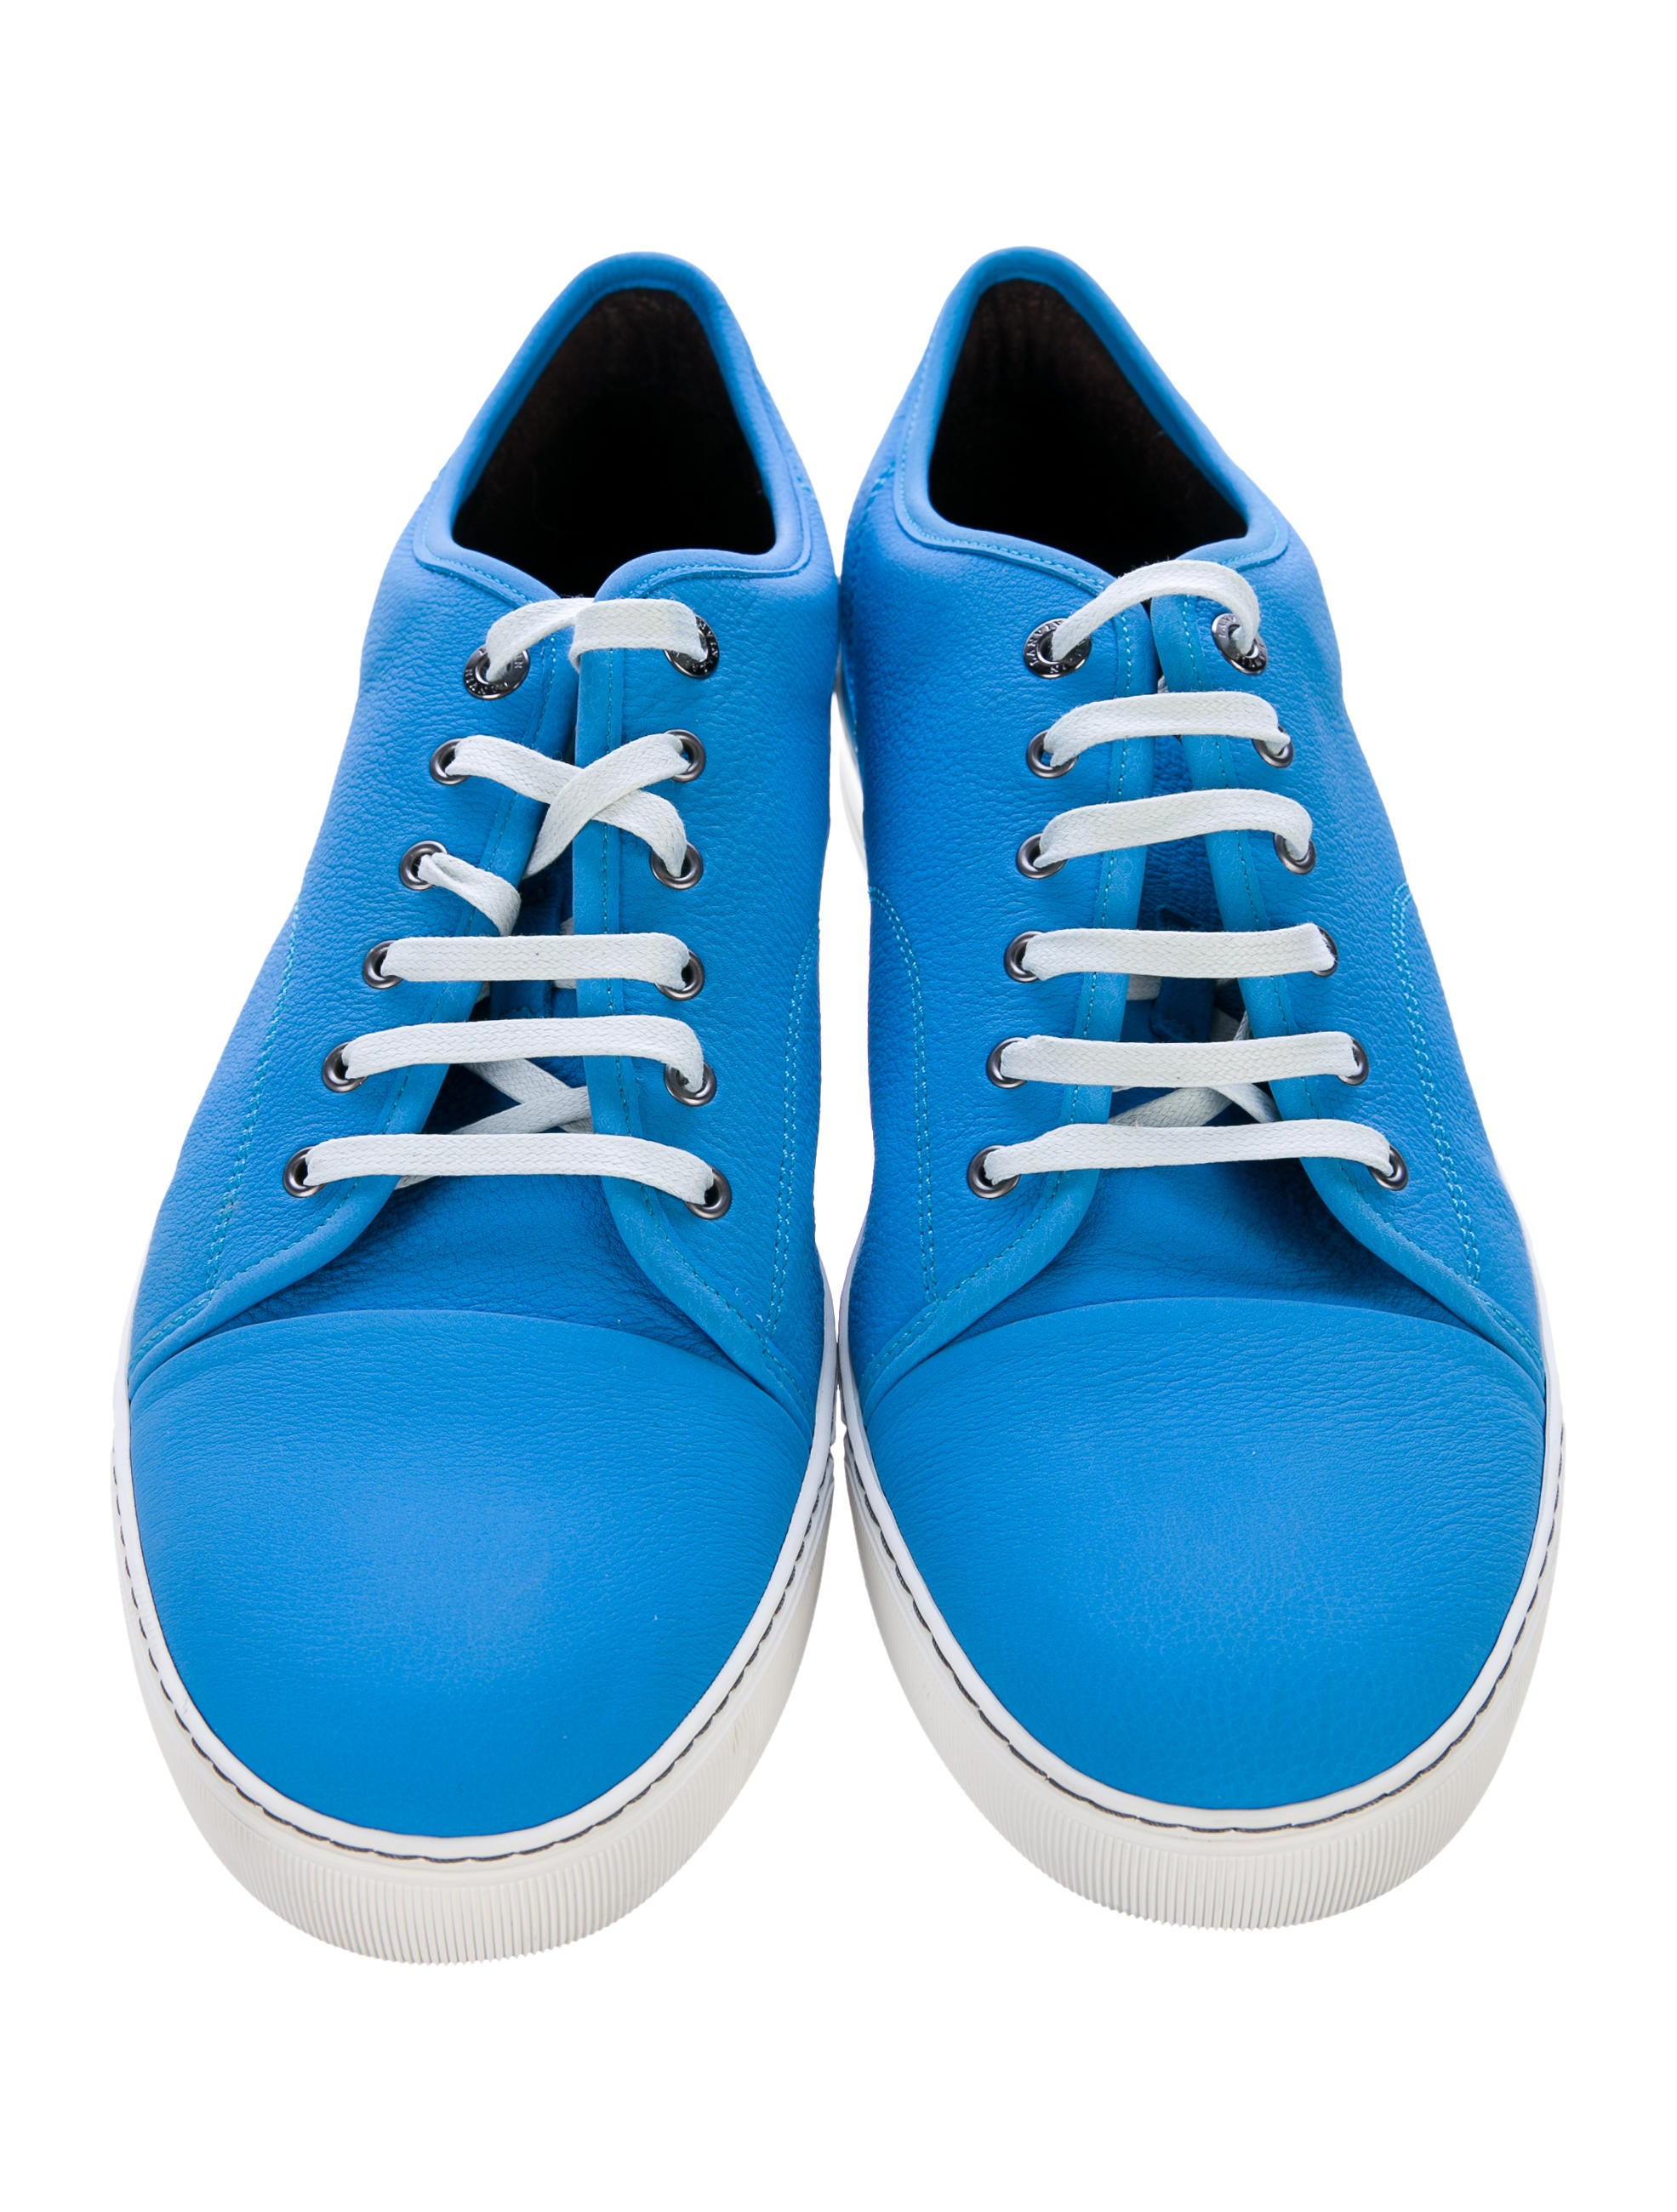 Lanvin leather cap toe sneakers shoes lan66125 the for 66125 3